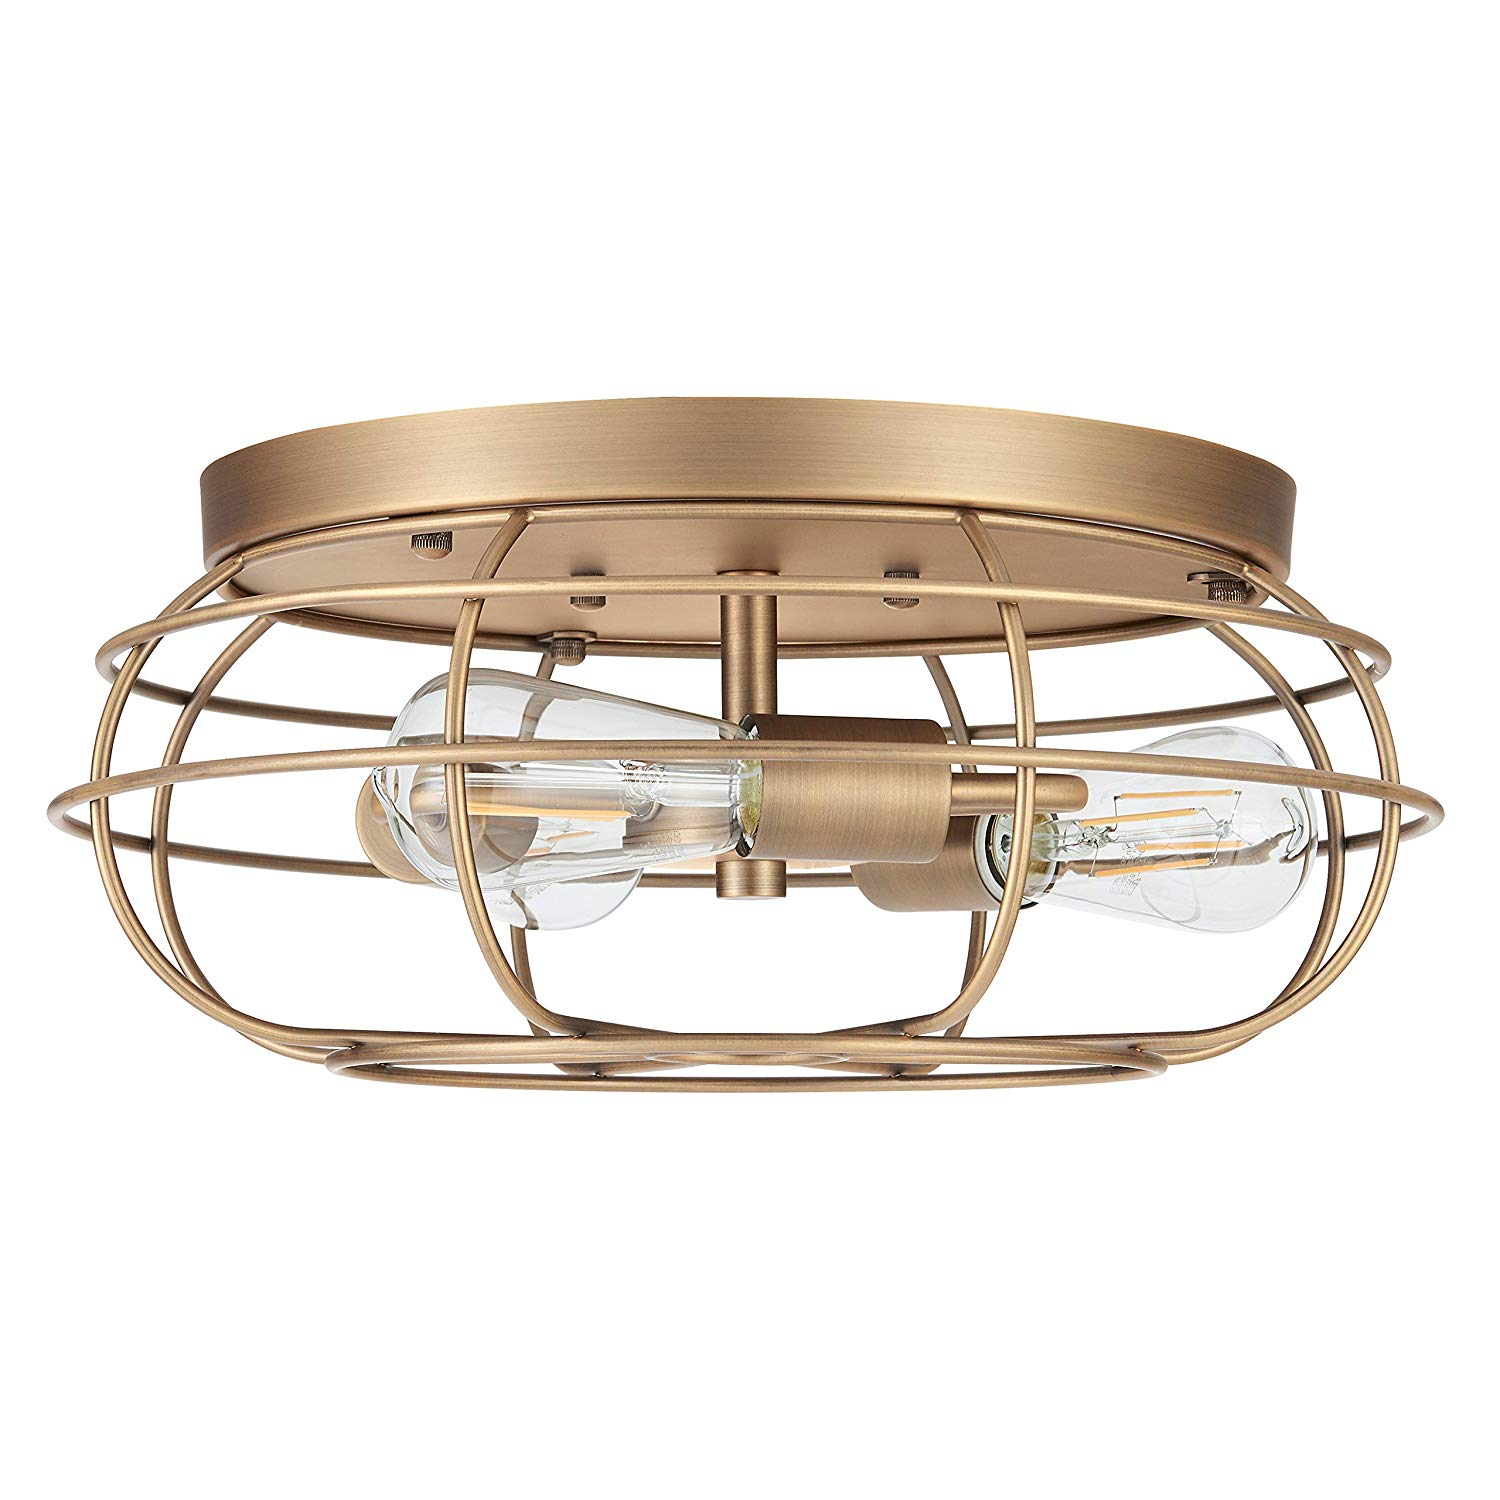 Beautiful and affordable brass lighting perfect for adding a touch of vintage charm to your home!